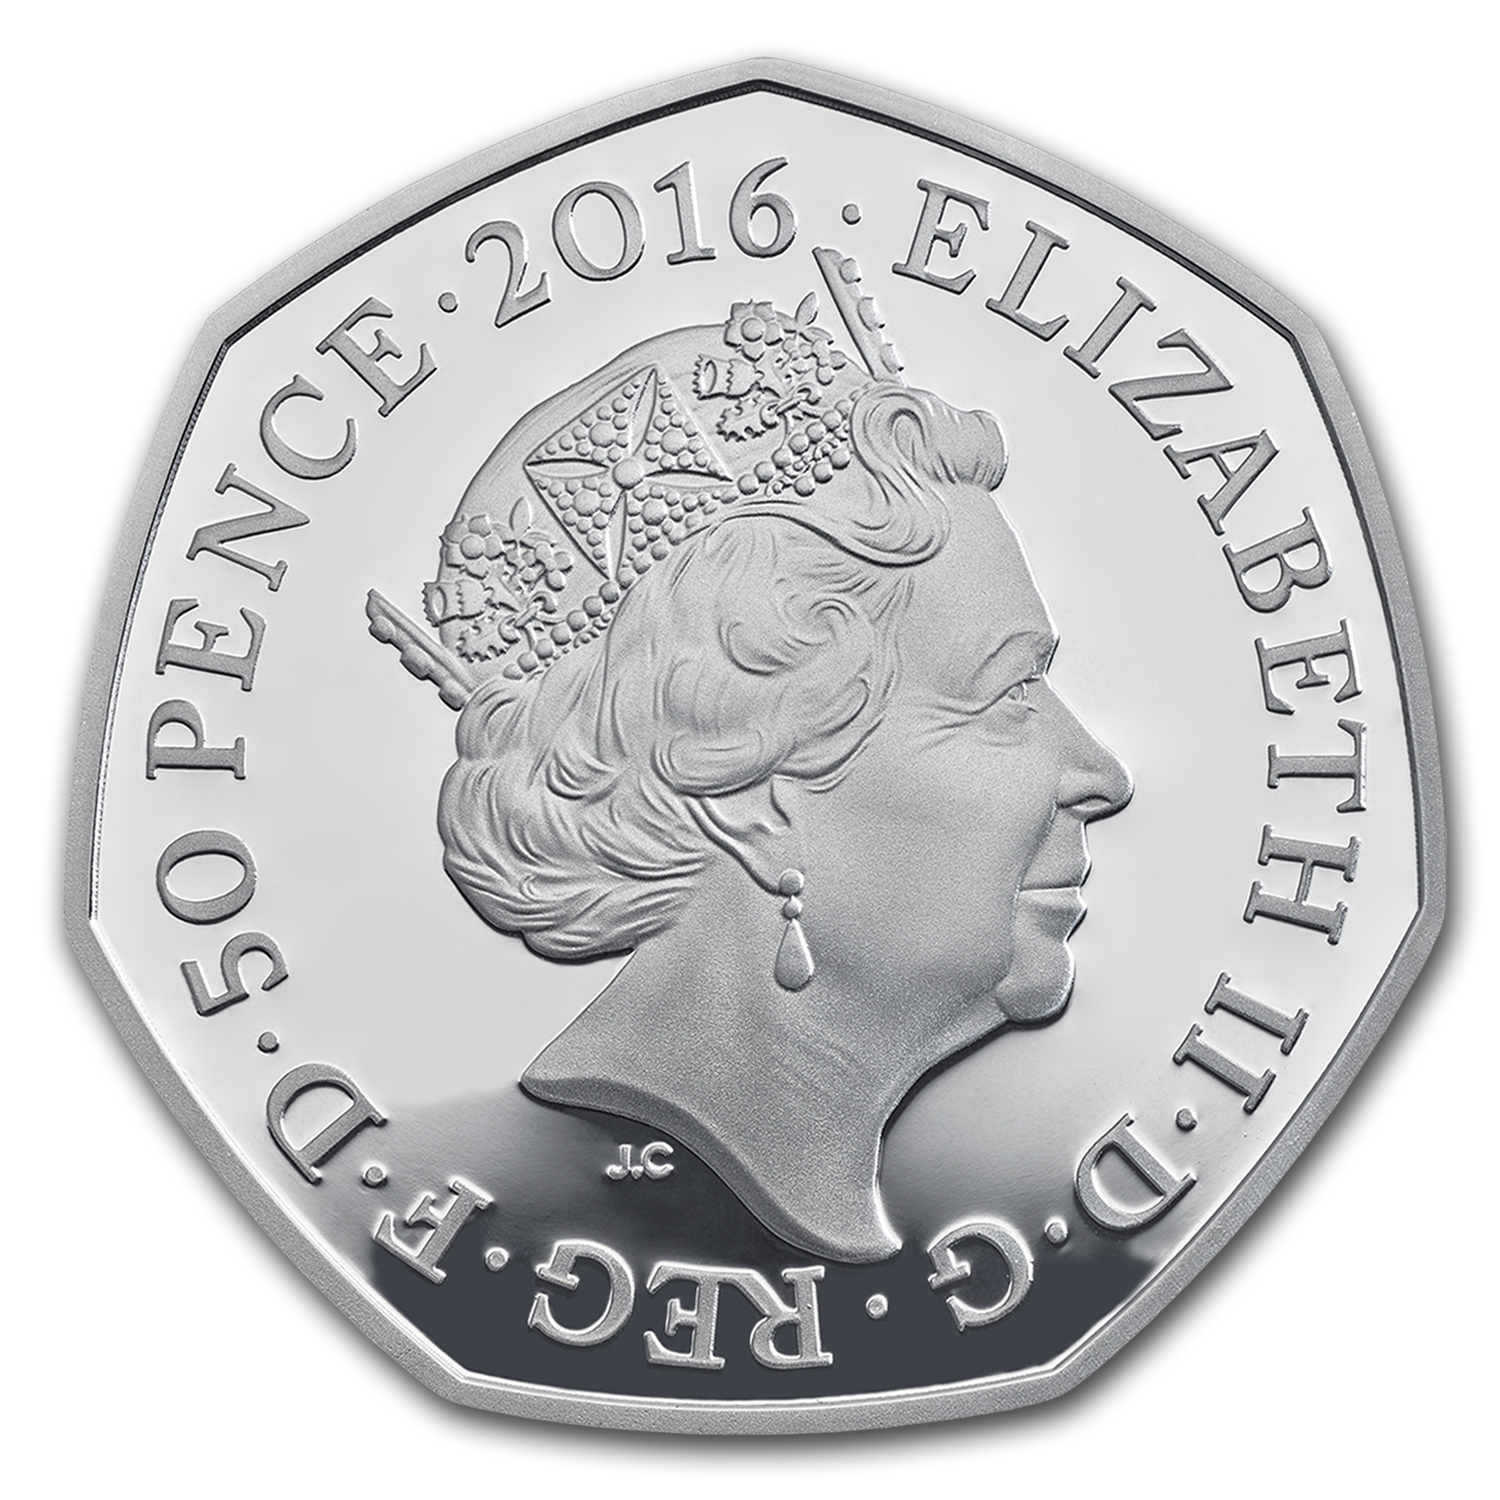 2016 Great Britain 16 grams Silver Beatrix Potter Piedfort Proof